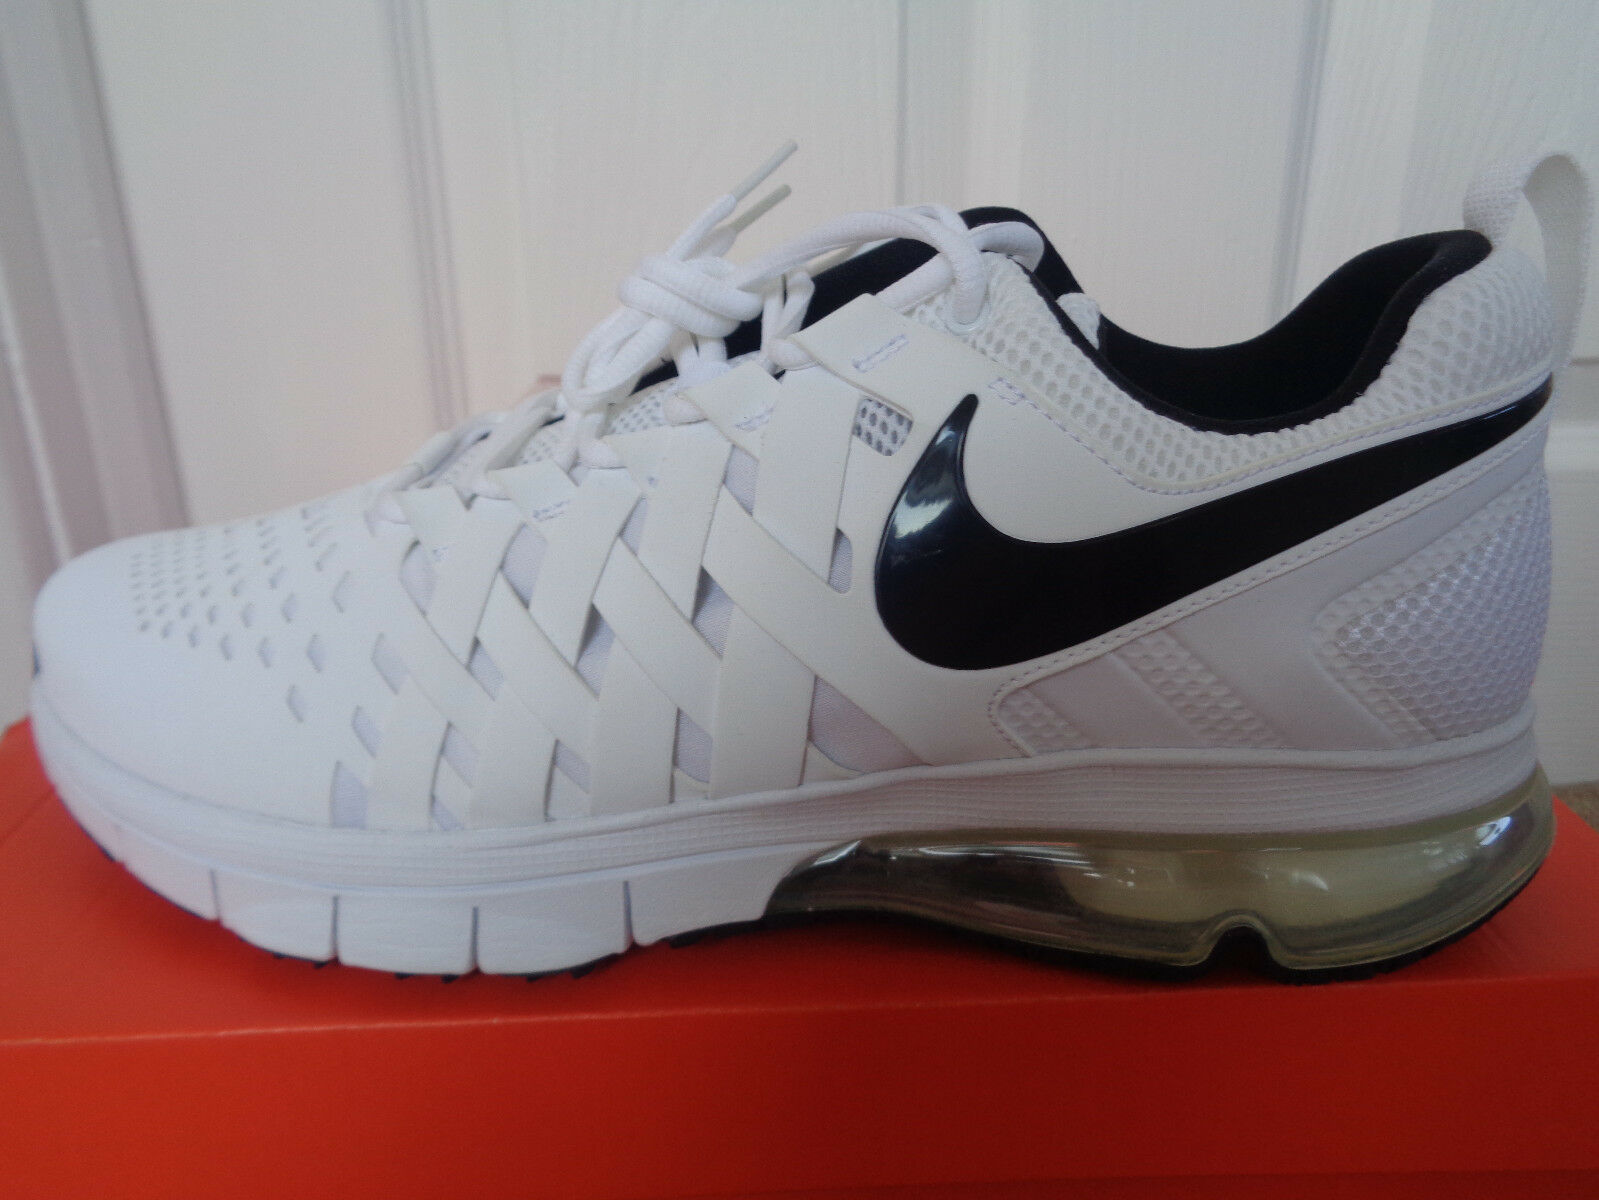 Nike TR MAX 180 TB Wide trainers shoes 603784 100 eu 47 us 12.5 NEW+BOX